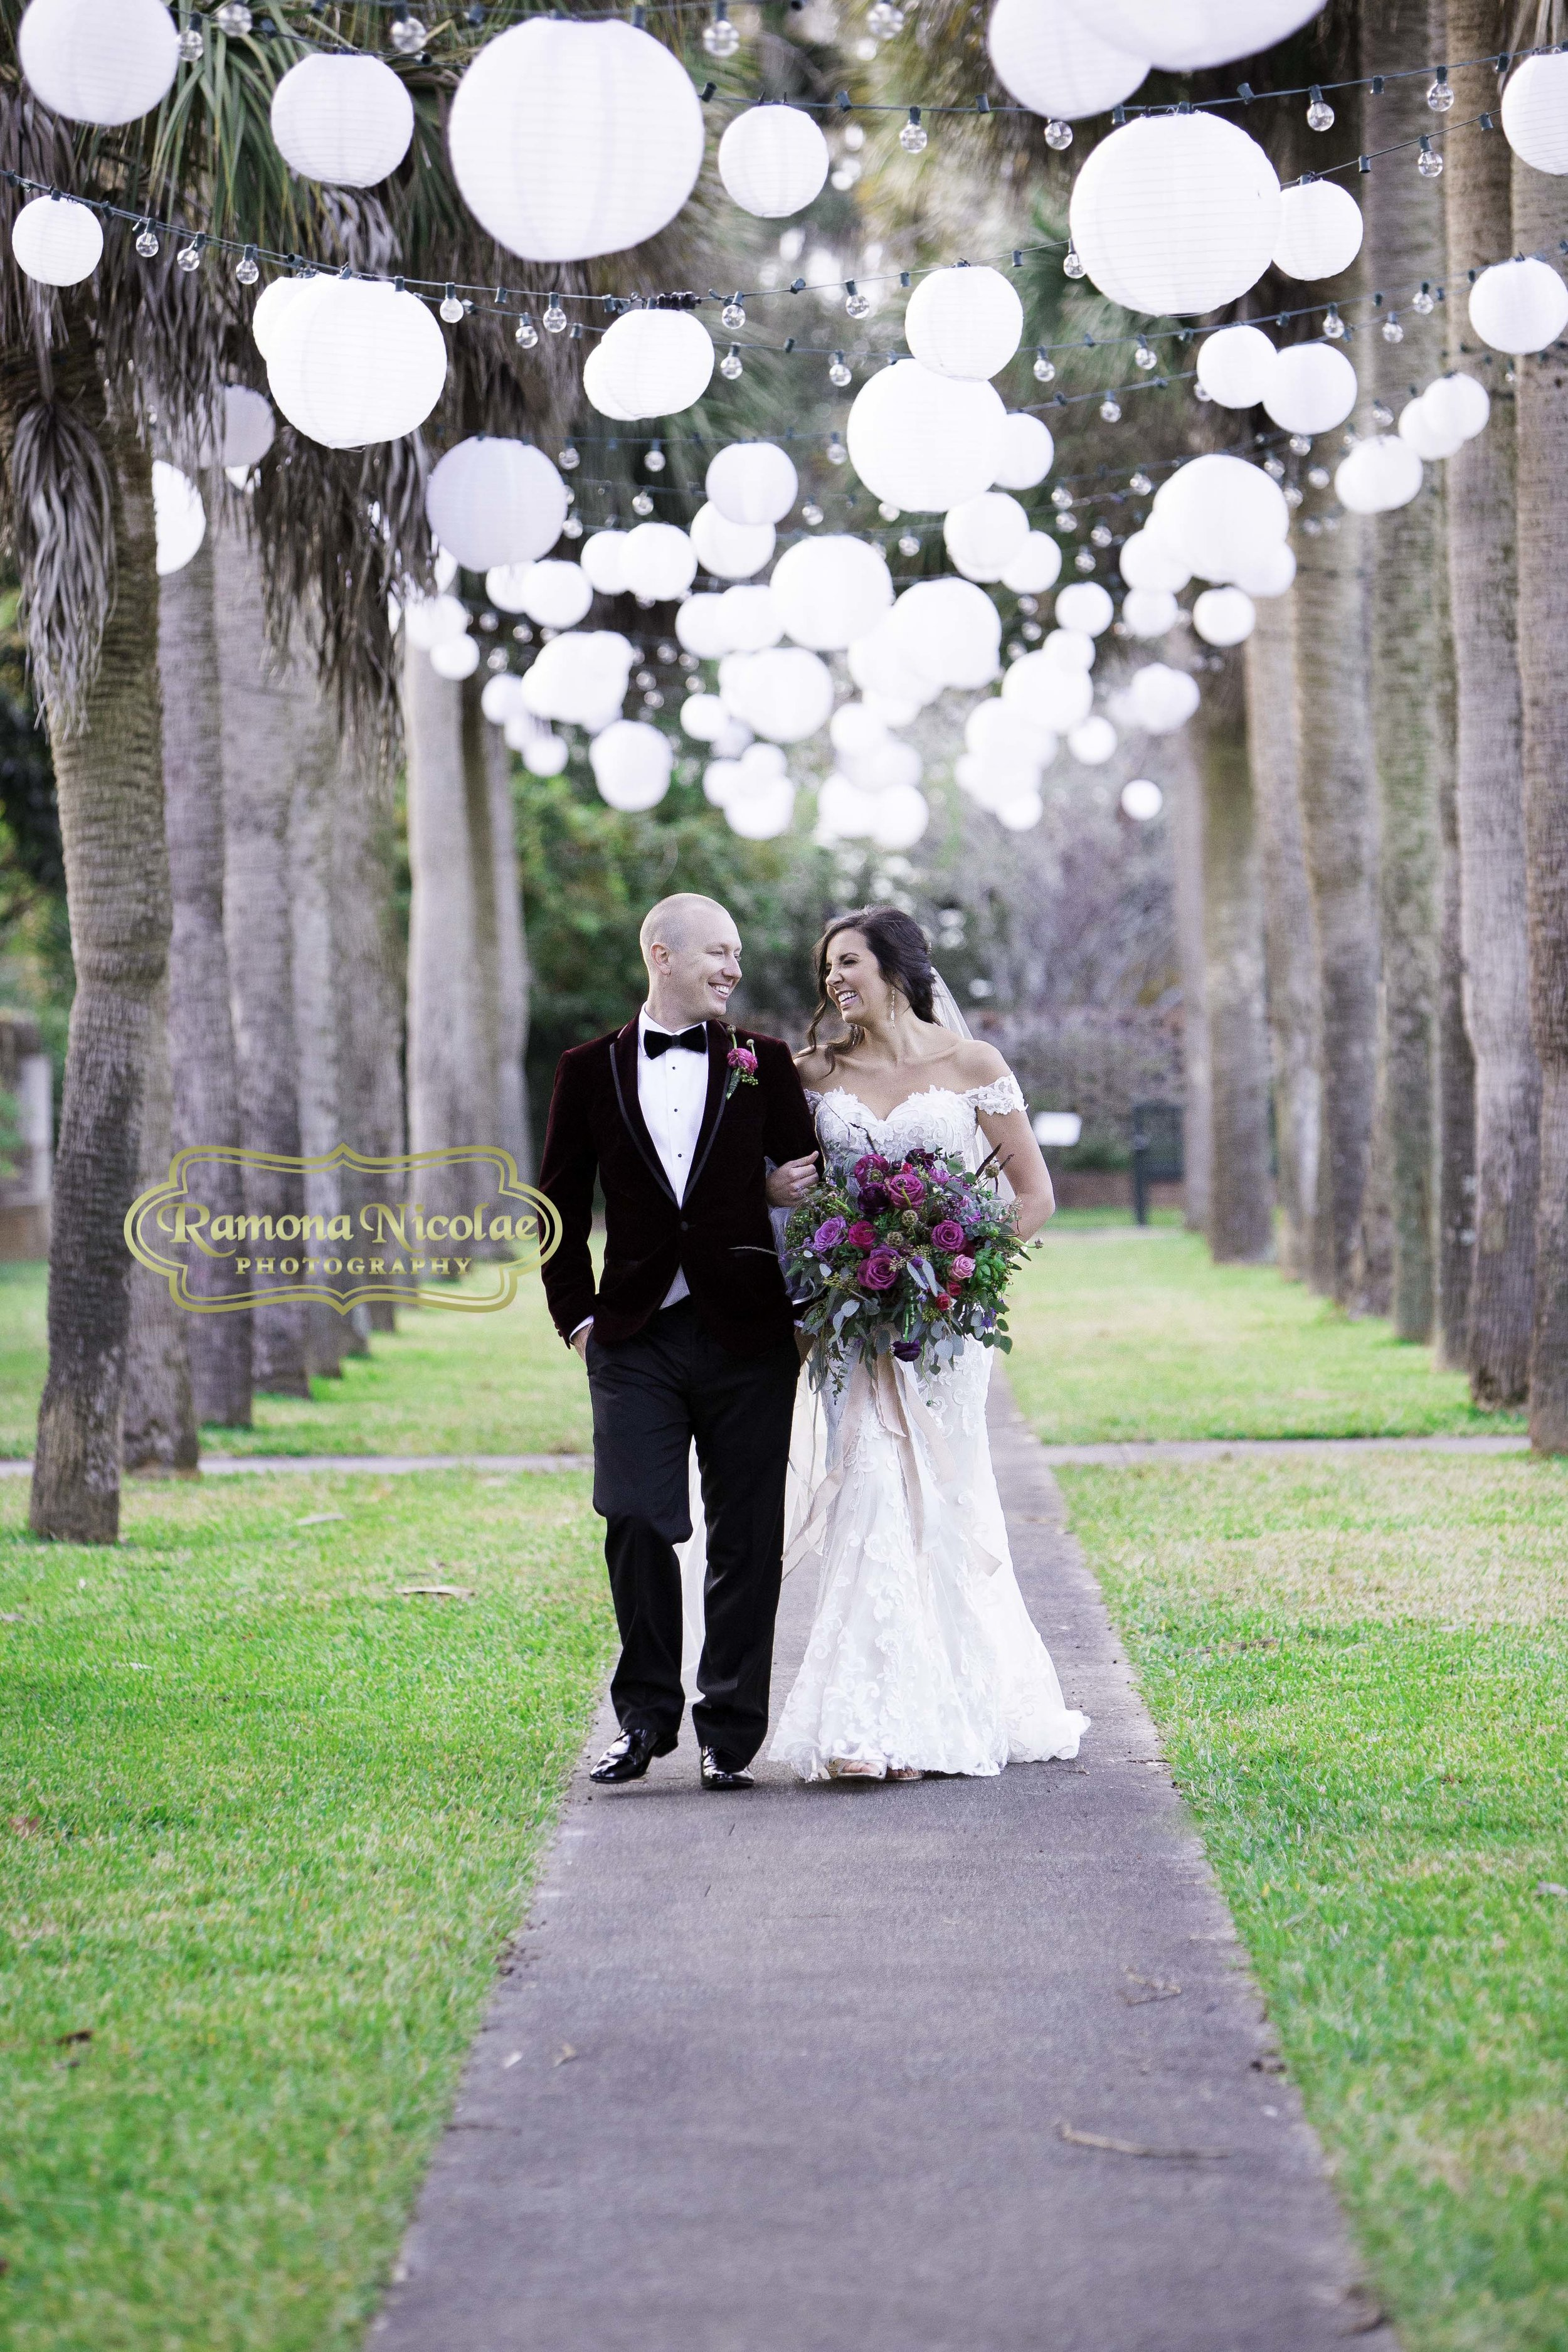 bride and groom walking at brookgreen gardens on their wedding day laughing holding wedding bouquet.jpg